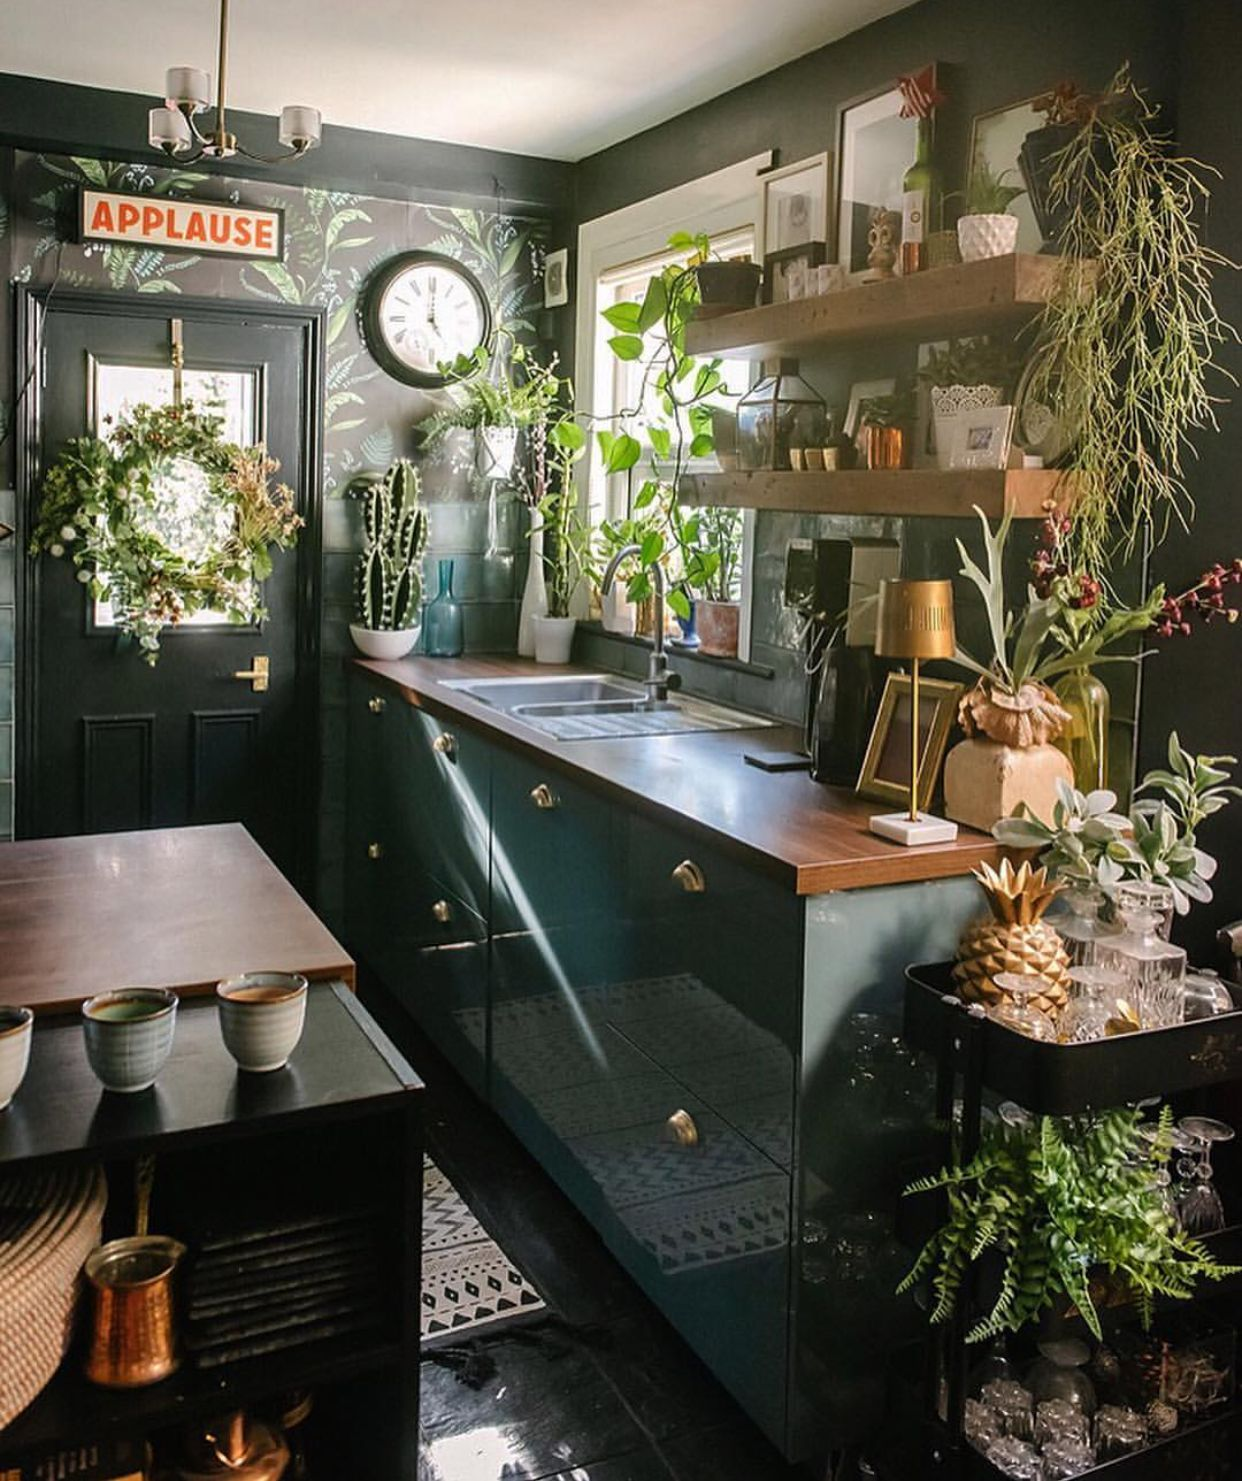 pin by julie hanks on tiny house dreaming bohemian kitchen fall interior decor trending decor on boho chic kitchen table decor id=98827